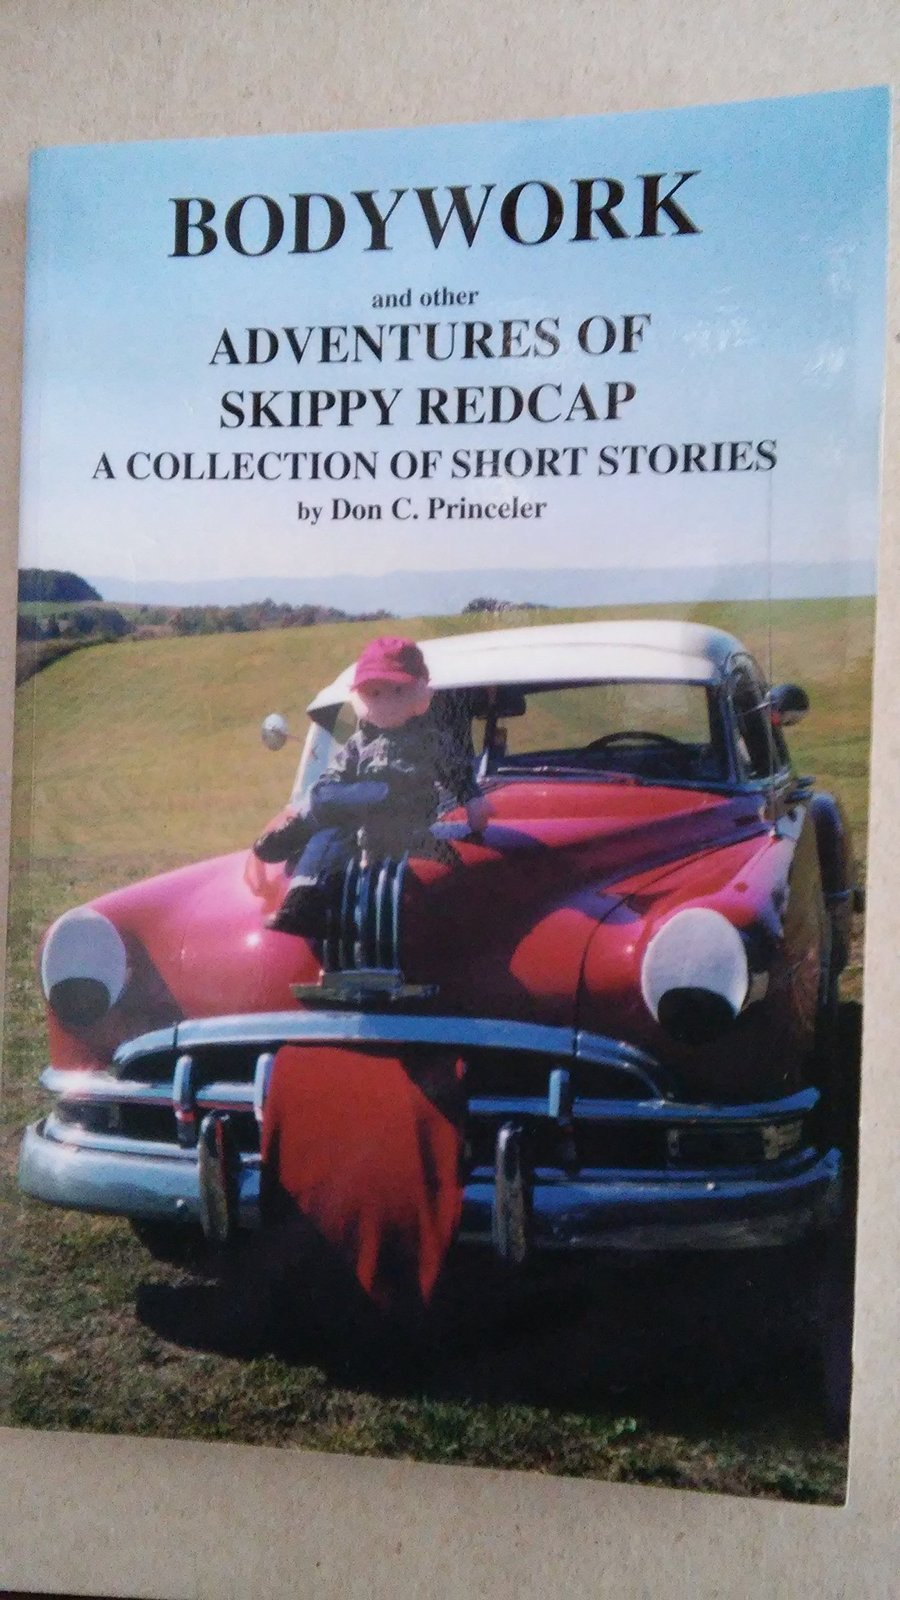 Bodywork: And Other Adventures of Skippy Redcap by Princeler, Don